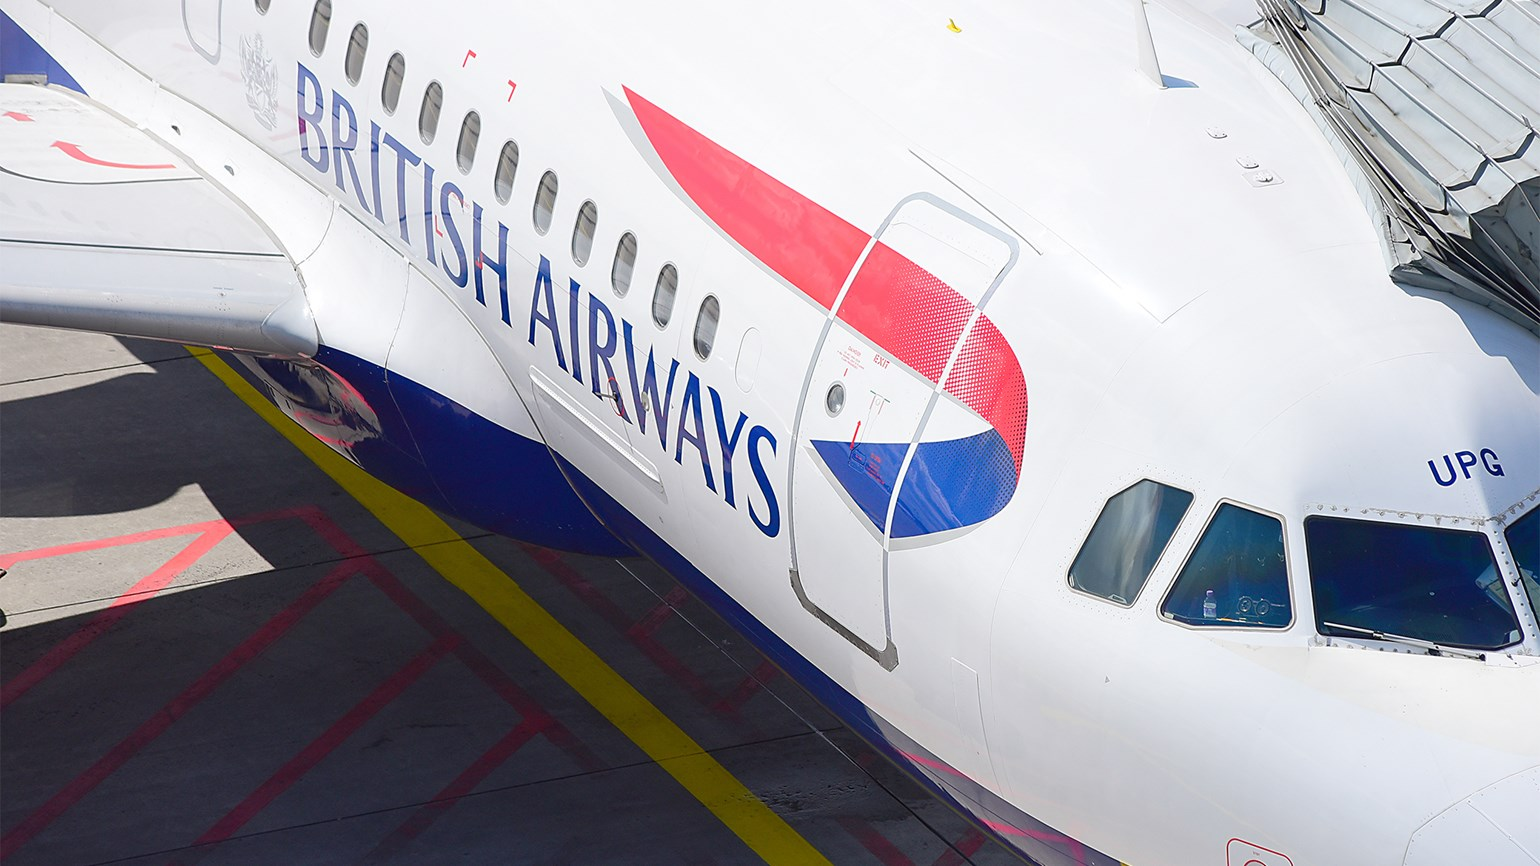 British Airways owner books loss as pandemic stalls travel